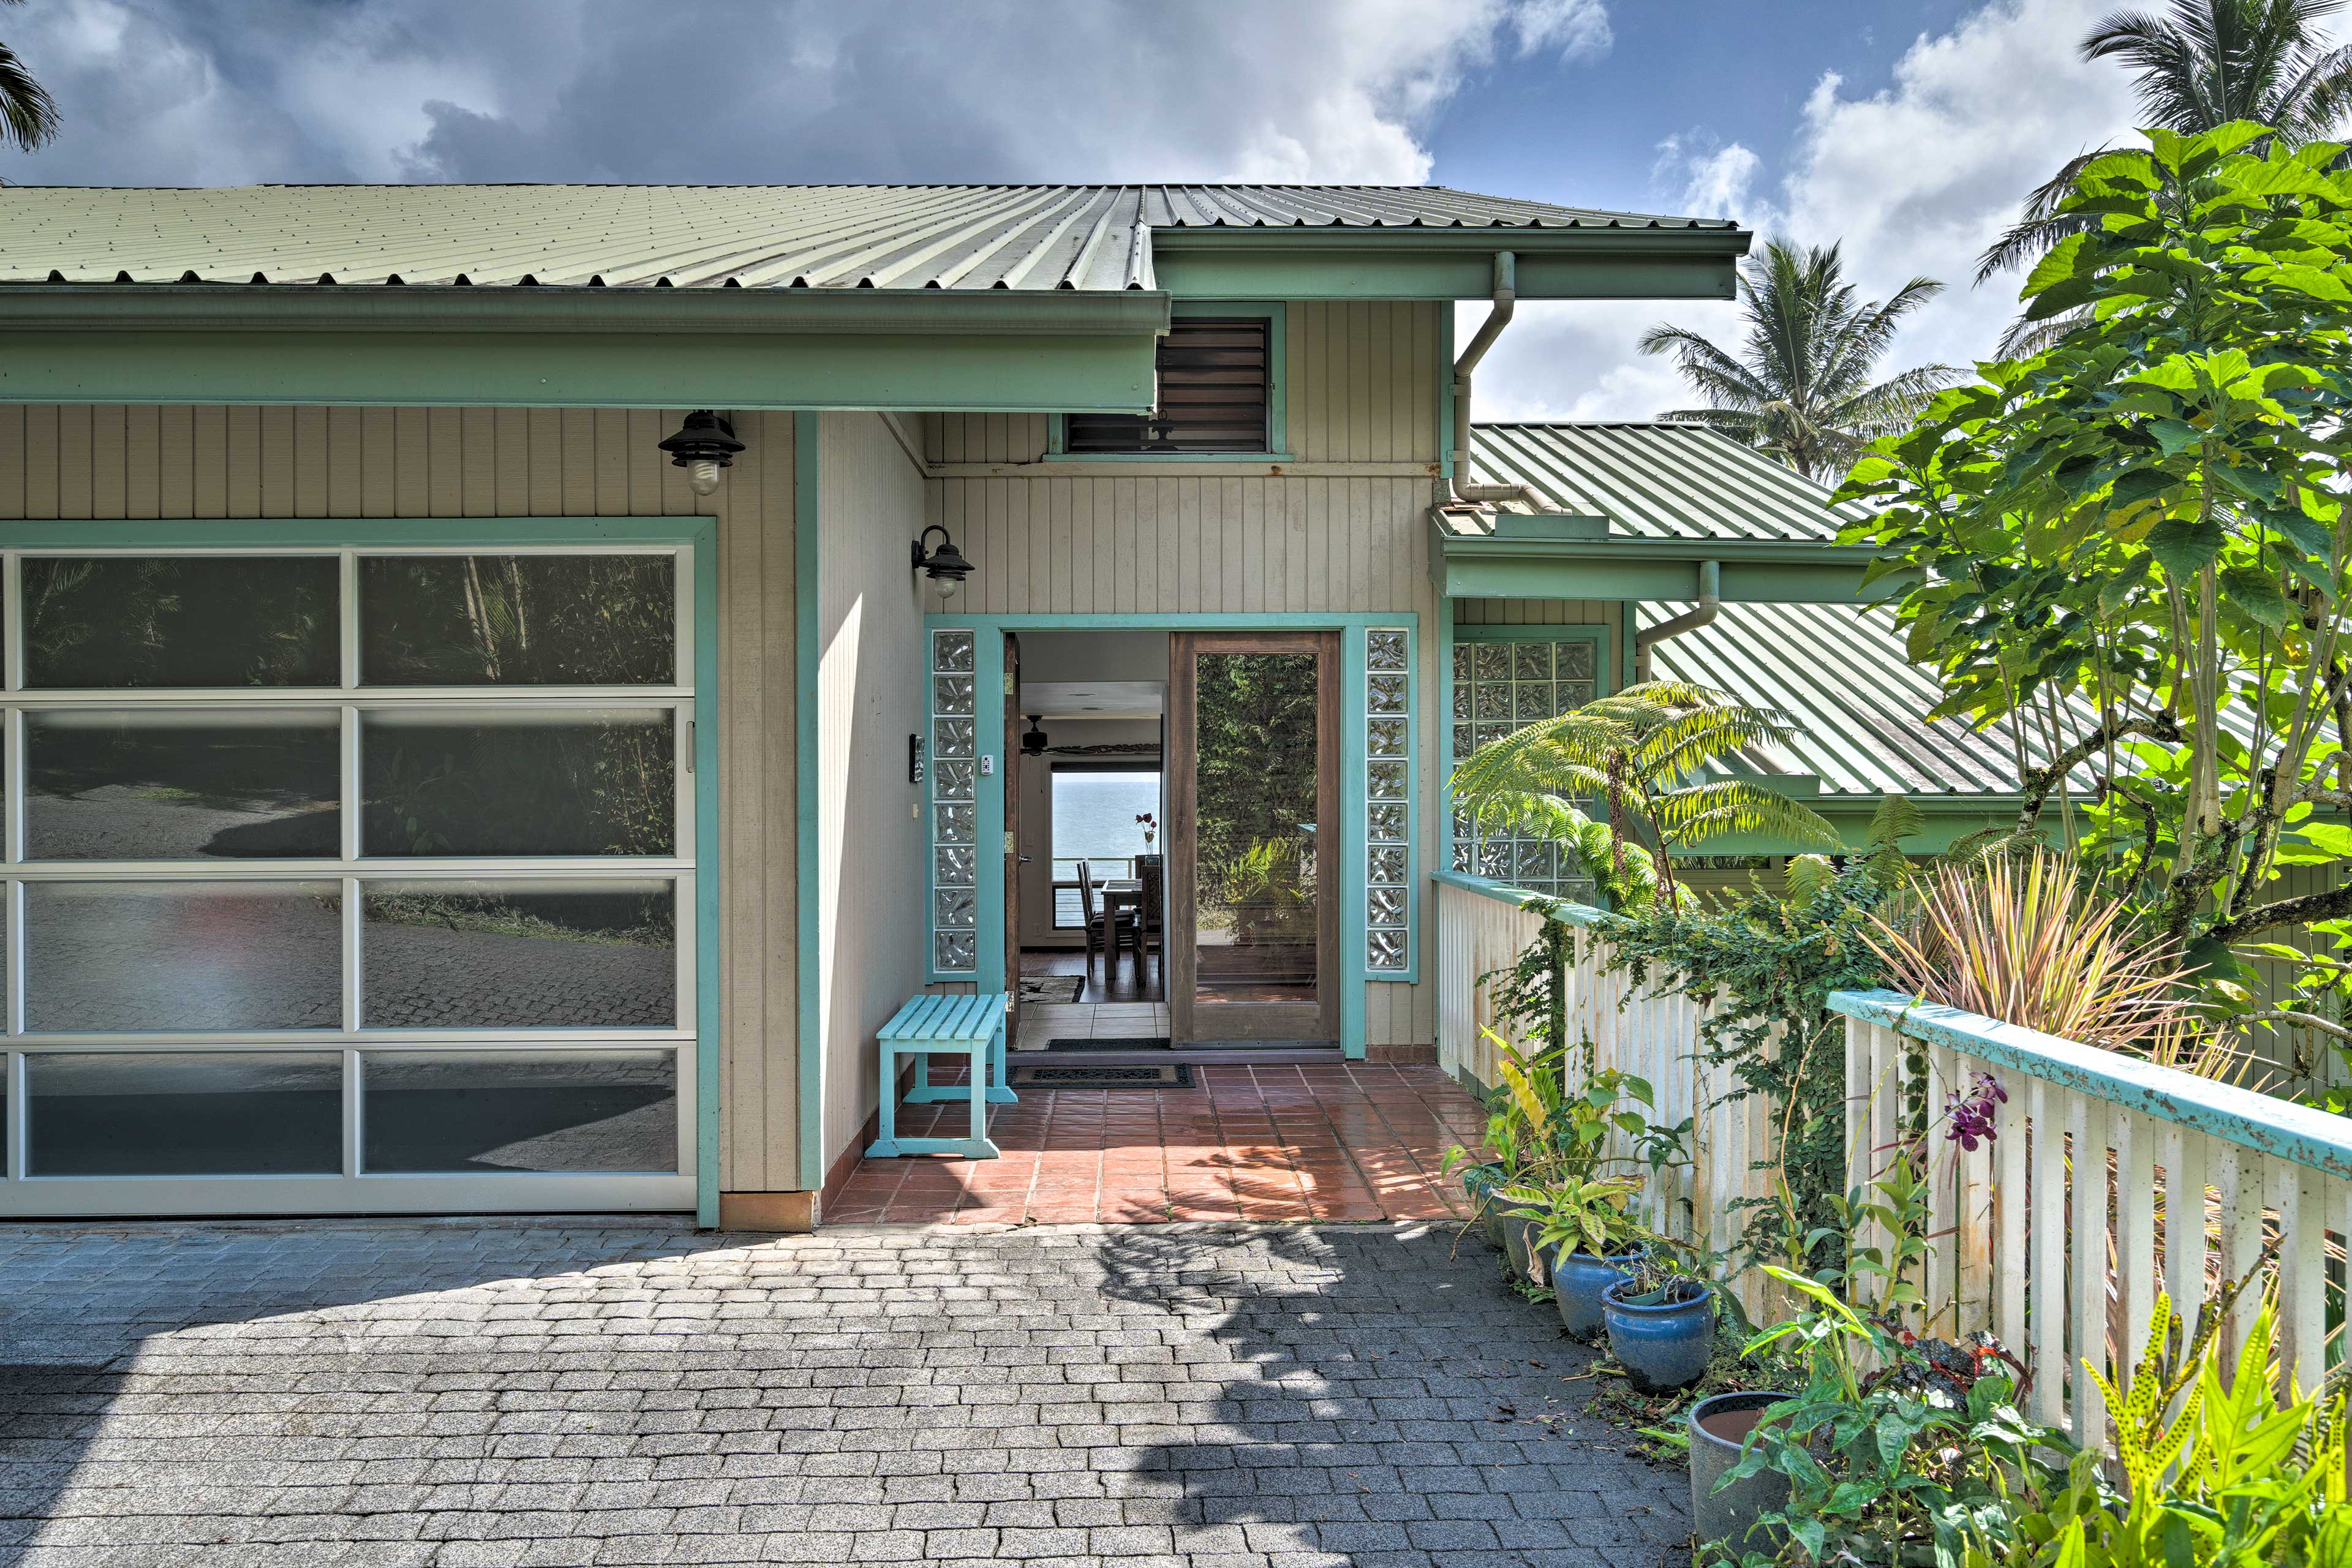 You won't want to leave this one-of-a-kind home just 2.5 miles from Hilo!